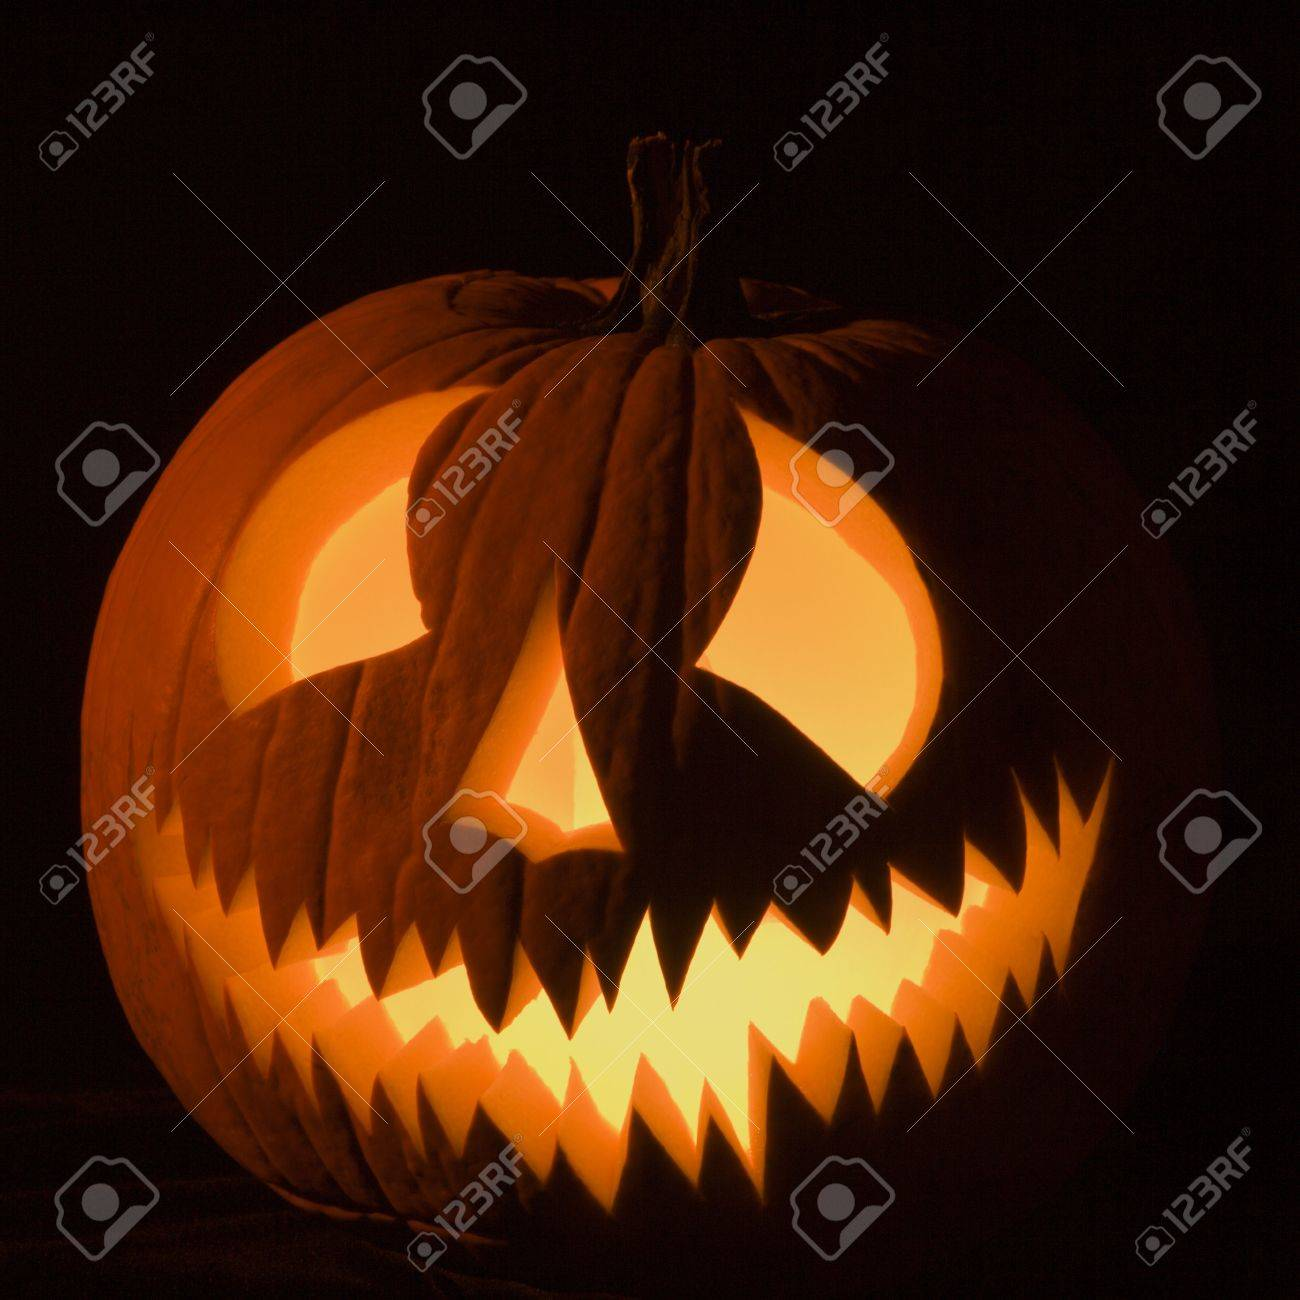 Carved Halloween pumpkin glowing in the dark. Stock Photo - 1906600